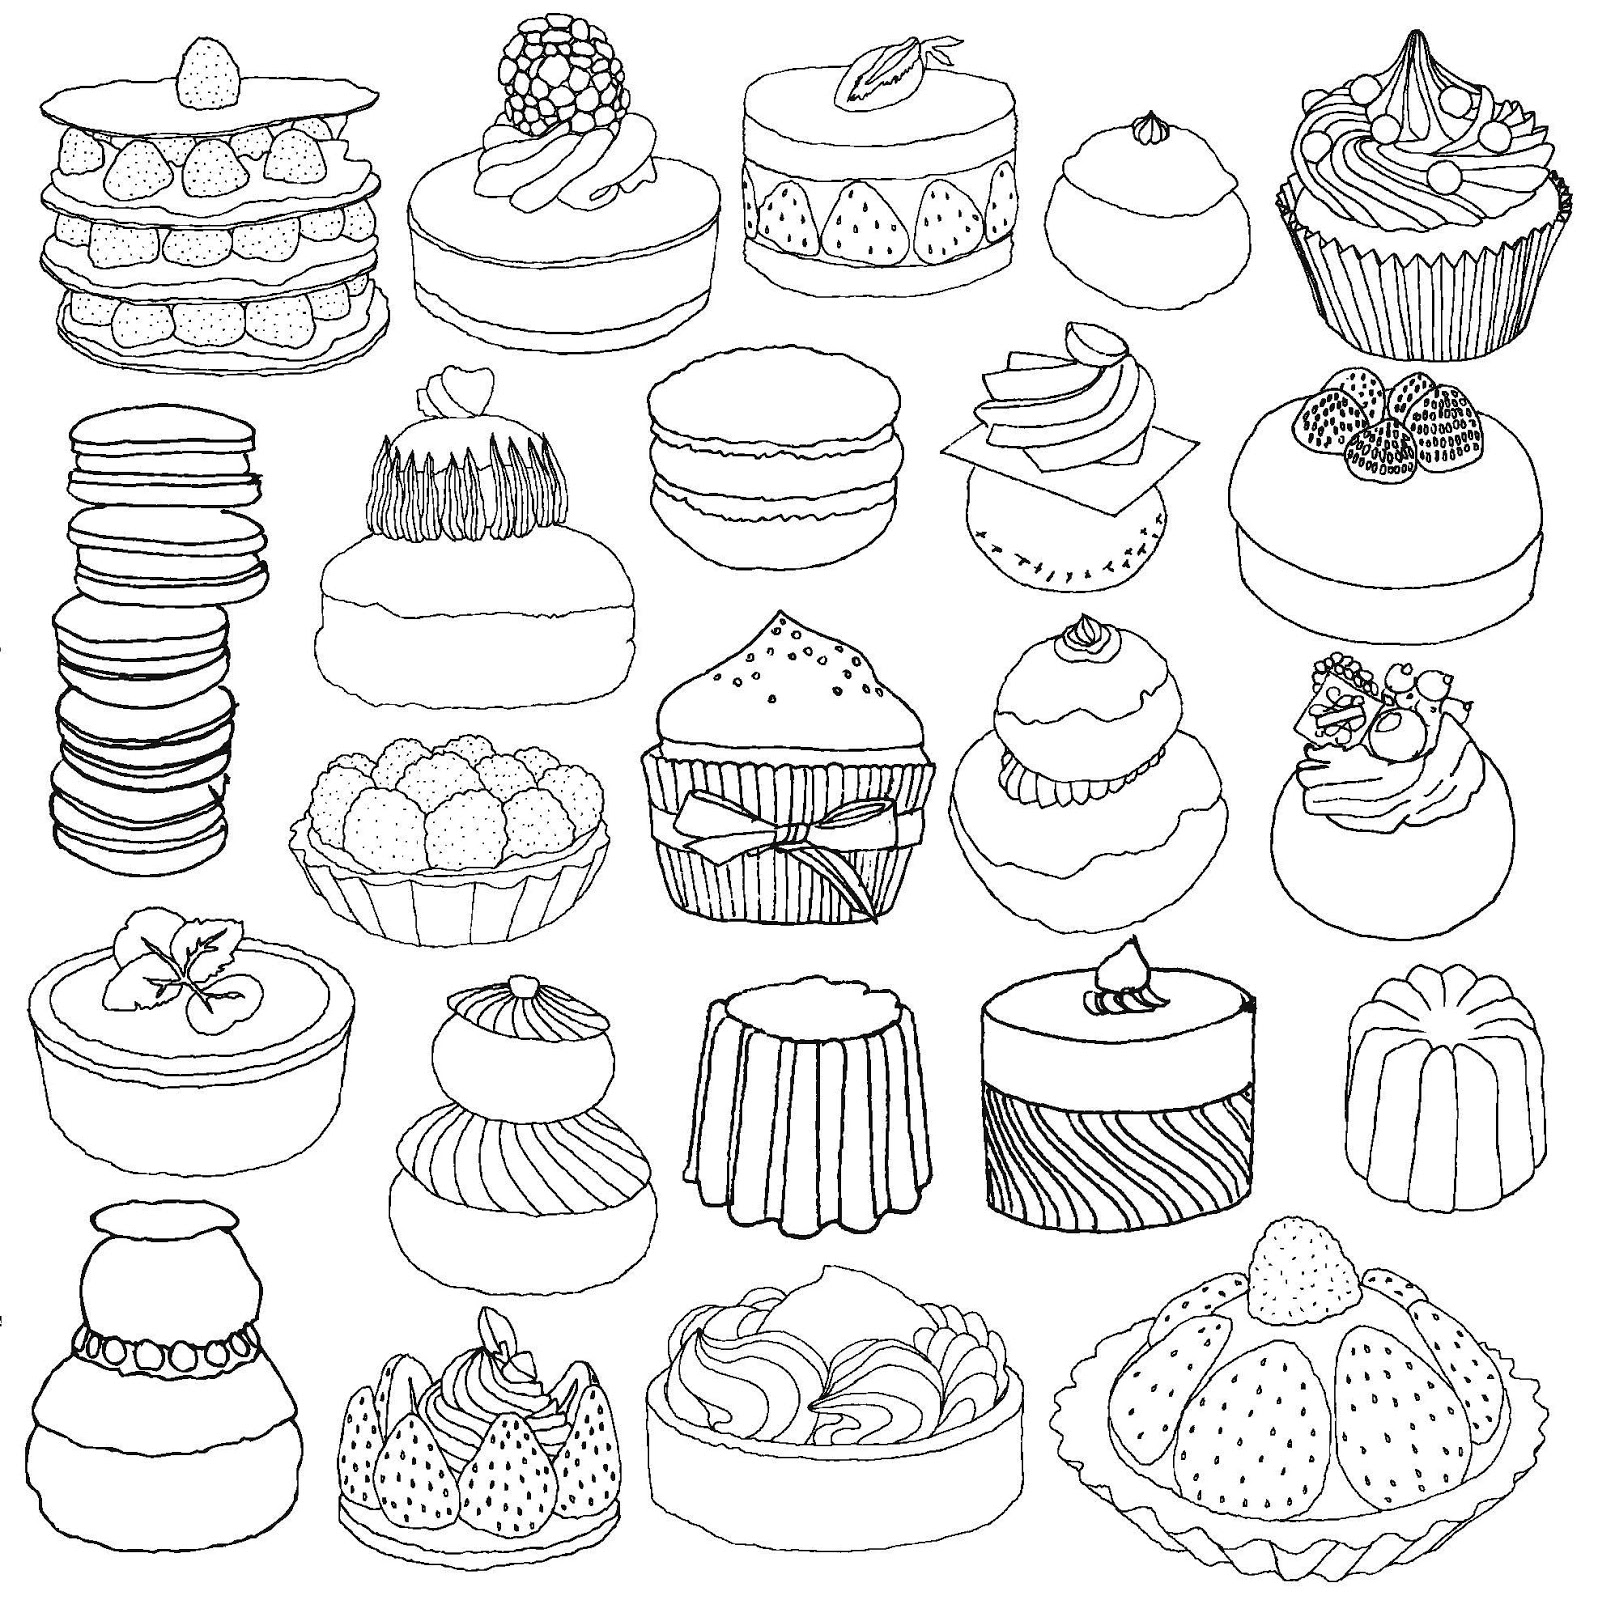 coloring pages french cafe - photo#23